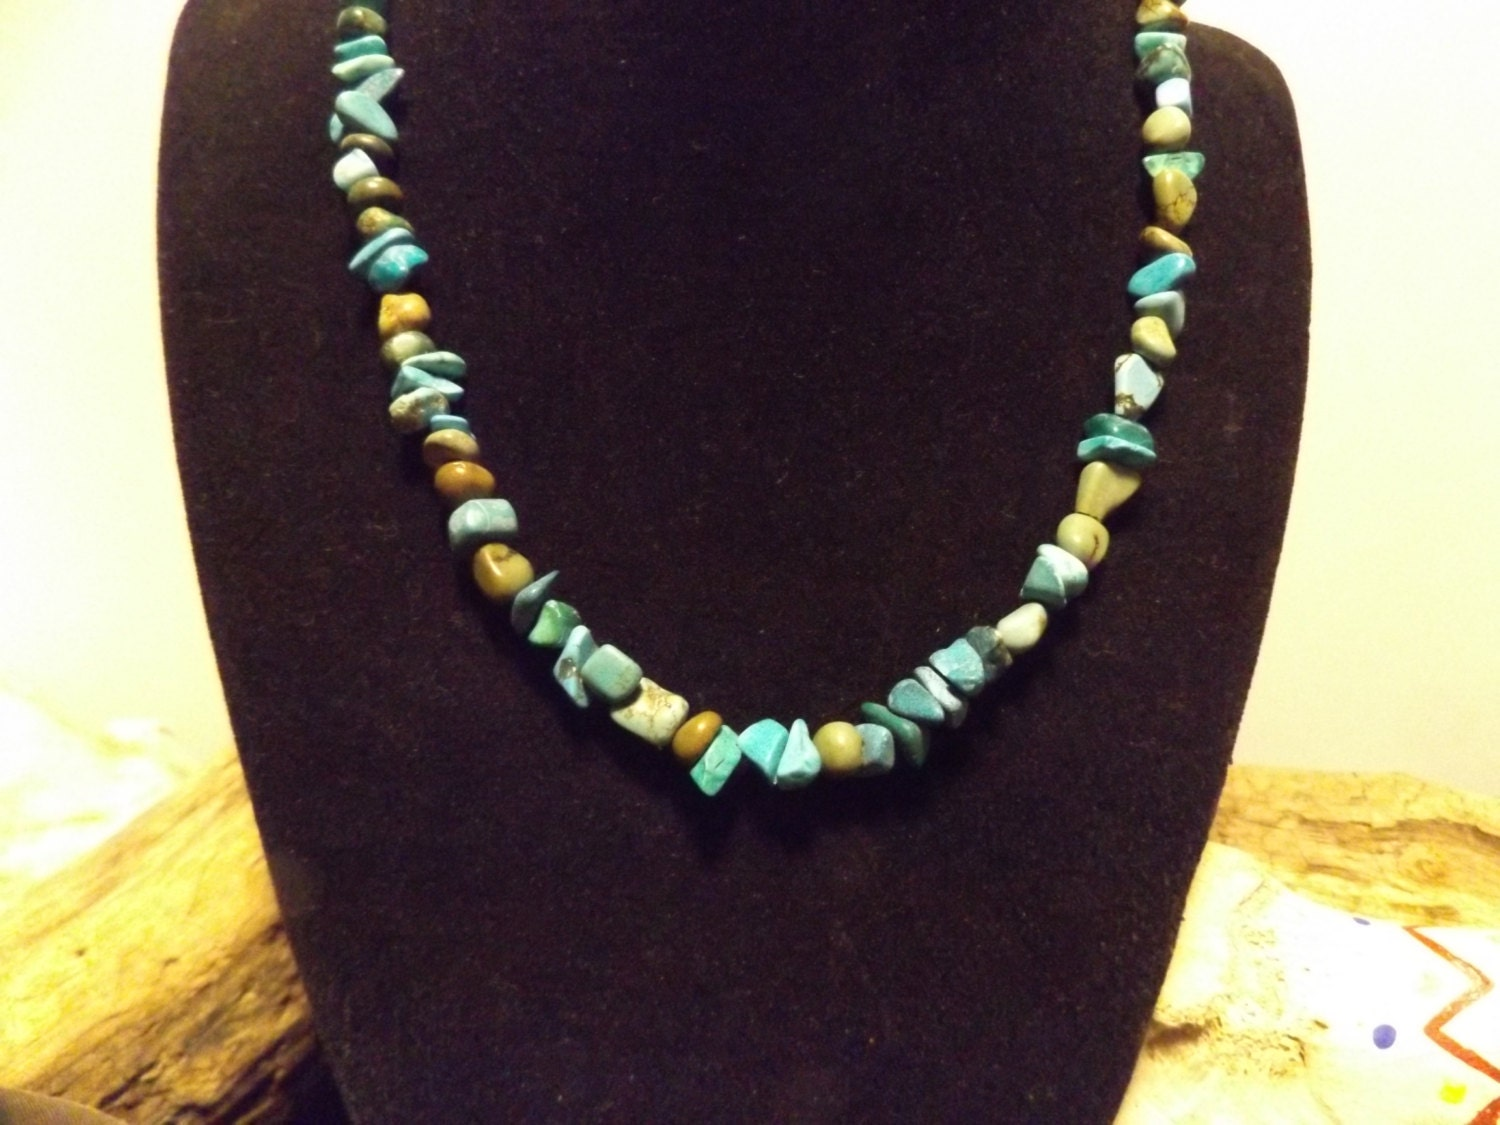 Turquoise Healing Necklace Healing Crystal Jewelry Healing